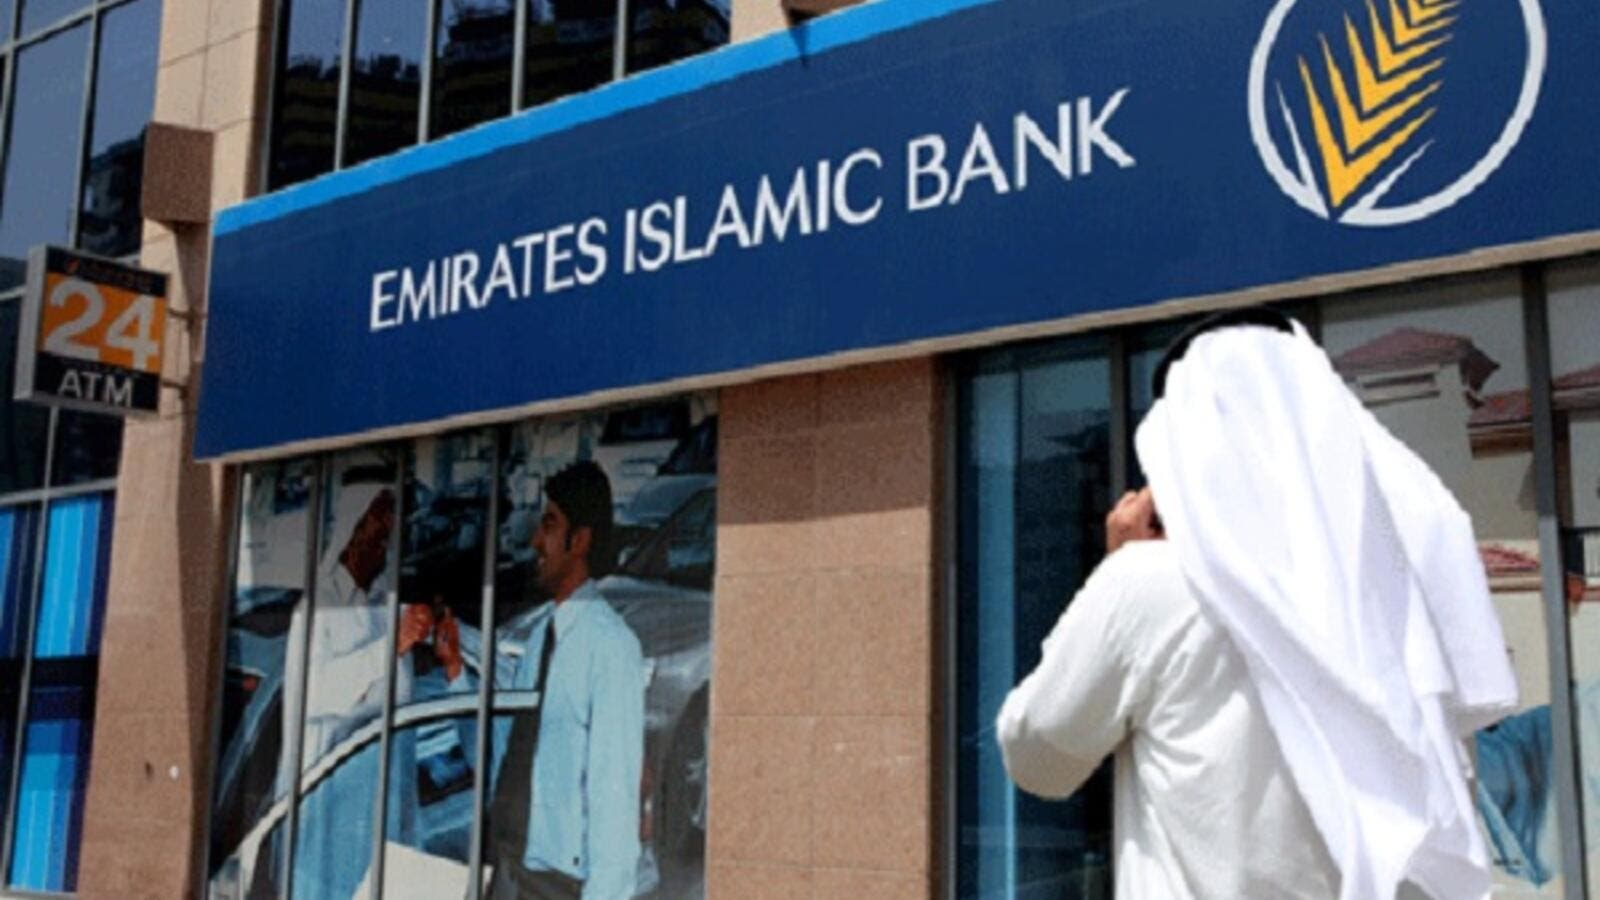 Barclays and National Bank of Ras Al Khaimah announced job cuts earlier this year. (Twitter)